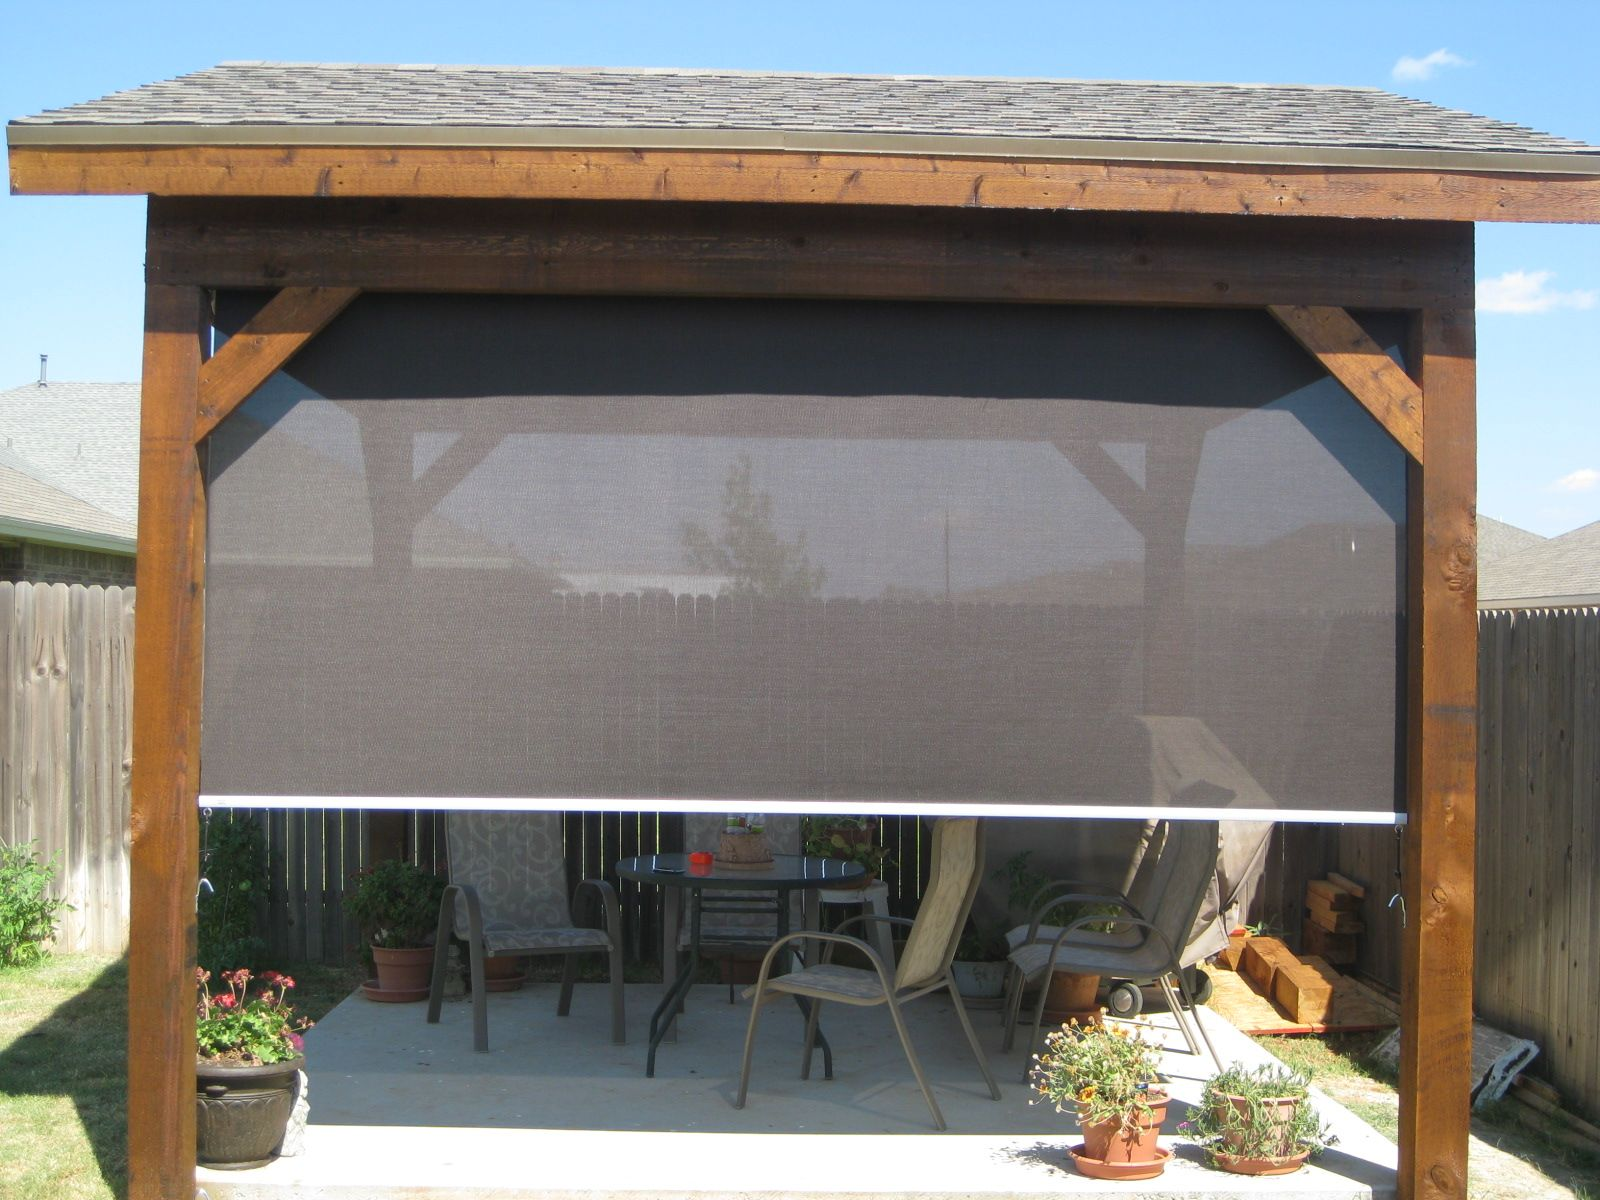 Home blinds shutters roller shades patio shades solar screens about us  Best 25  Sun shade ideas on Pinterest   Sail shade  Outdoor sun  . Outdoor Fabric Sun Shades. Home Design Ideas